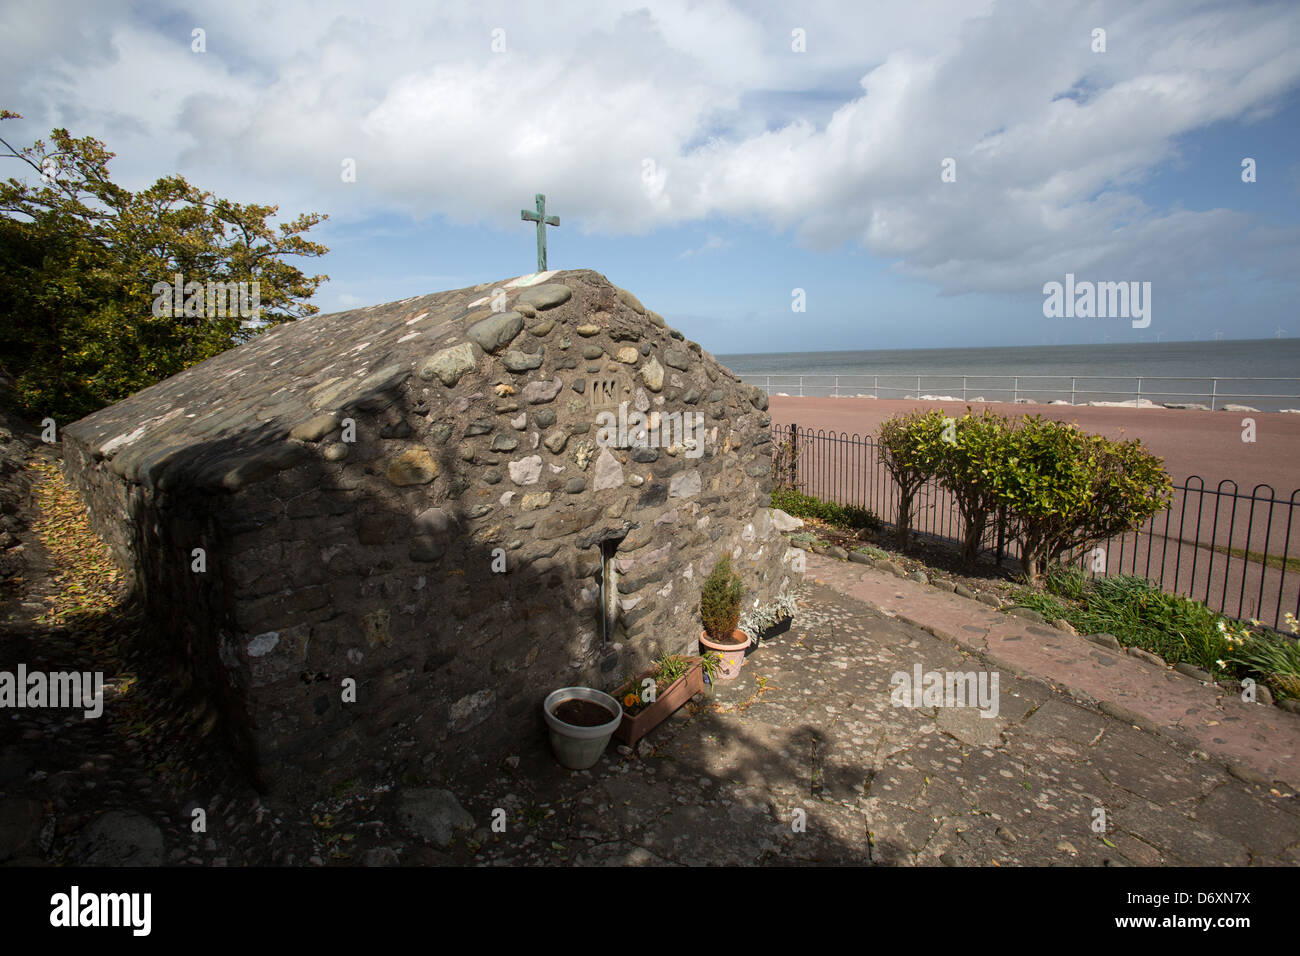 The Wales Coastal Path in North Wales. Picturesque view of the Holy Well and Chapel of St Trillo at Rhos on Sea. - Stock Image